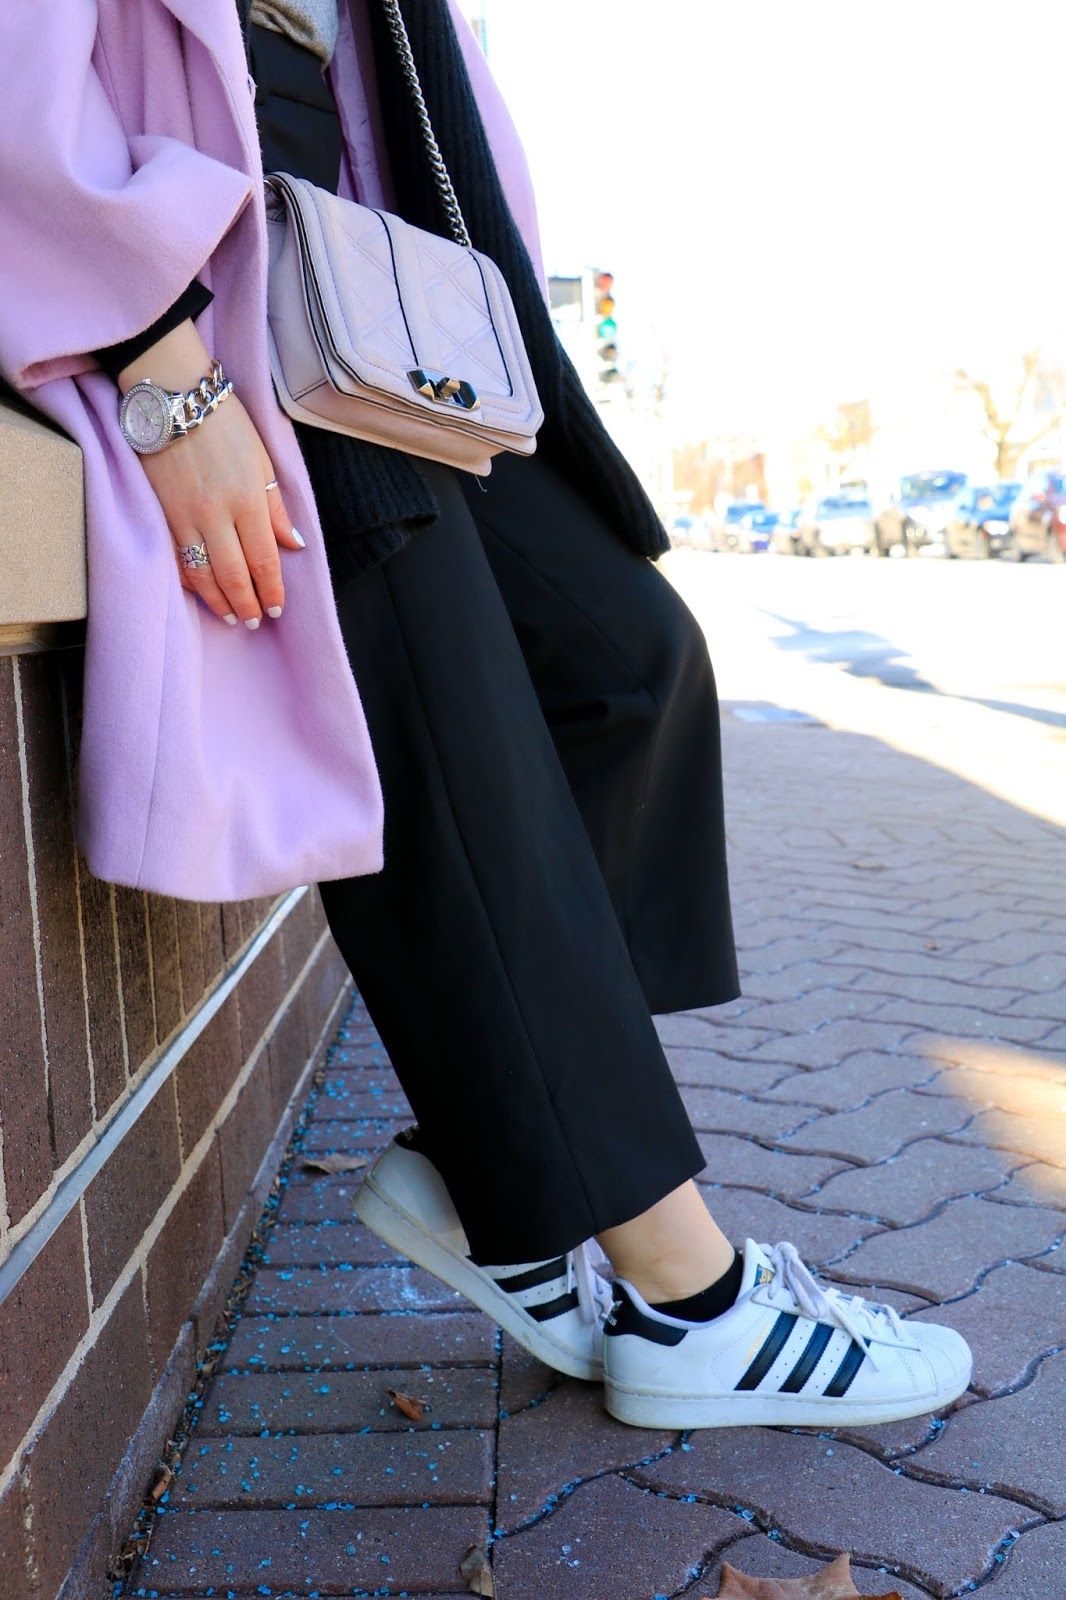 Nyc fashion blogger Kathleen Harper showing how to wear Adidas sneakers